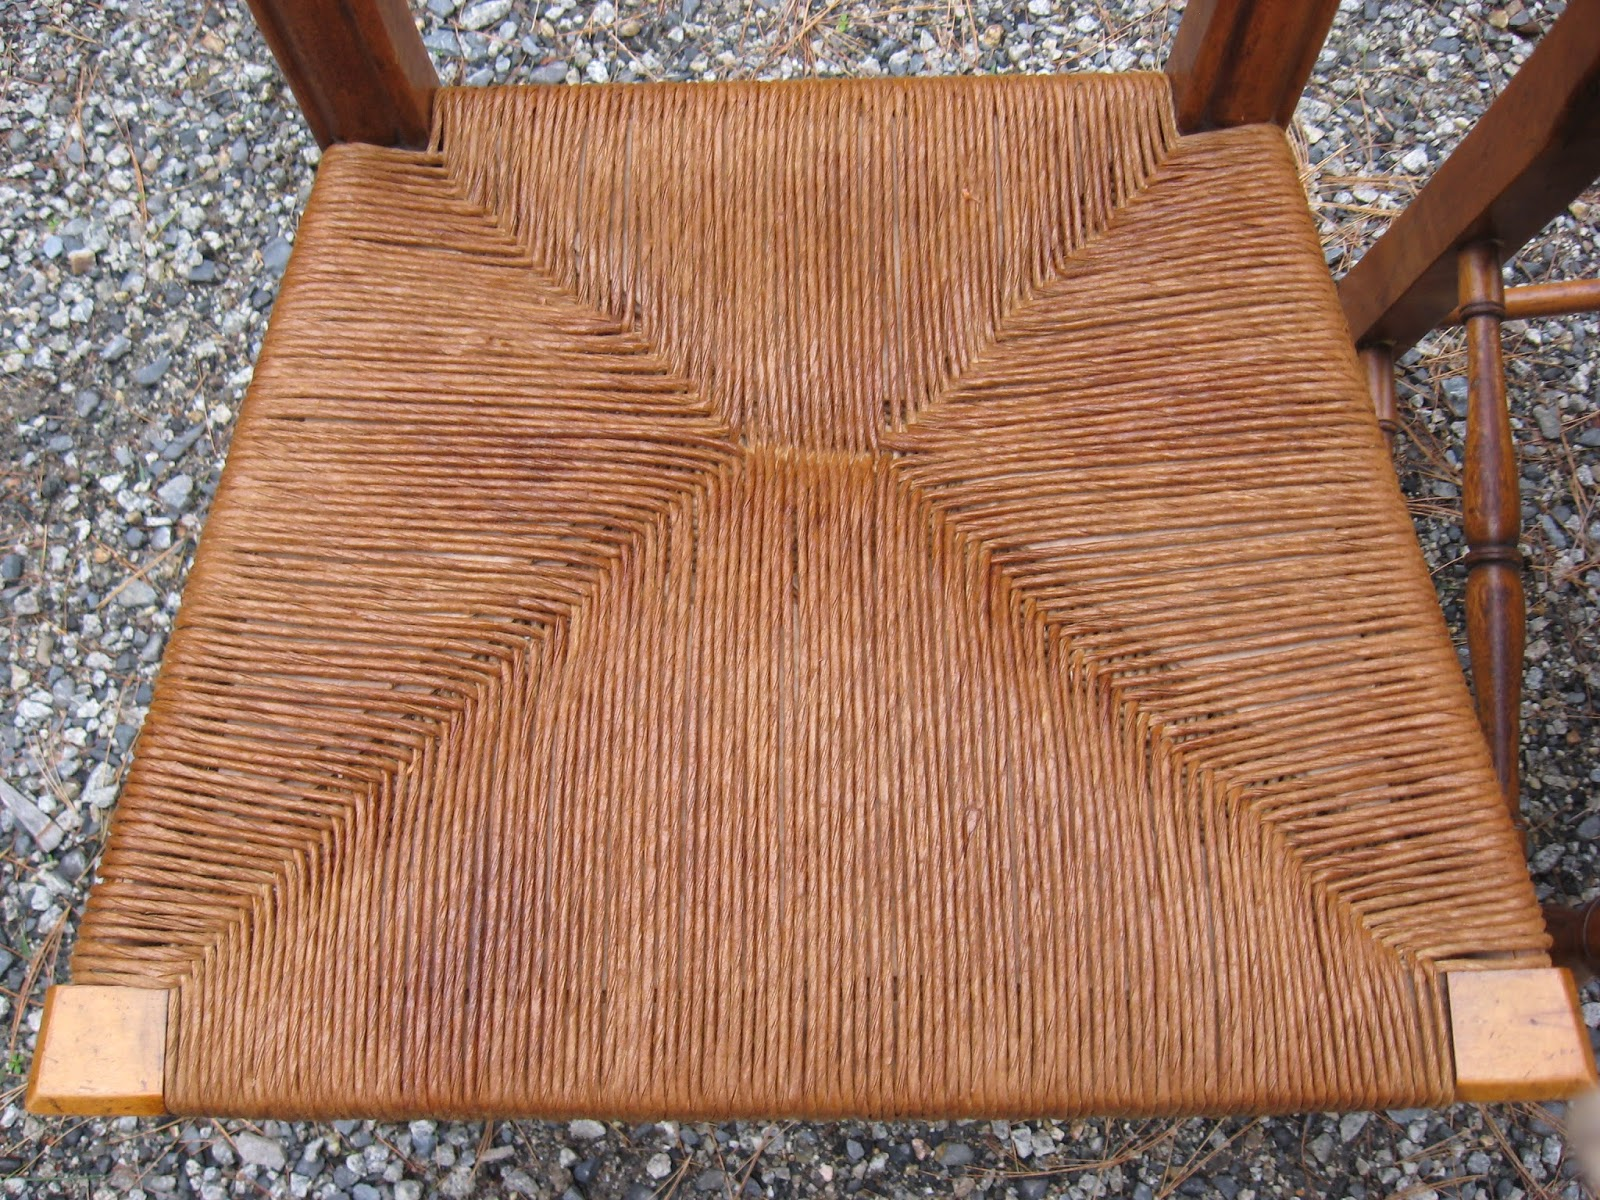 How To Replace Cane Back Chair With Fabric Mid Century Upholstered West Elm Maine Antique Repair